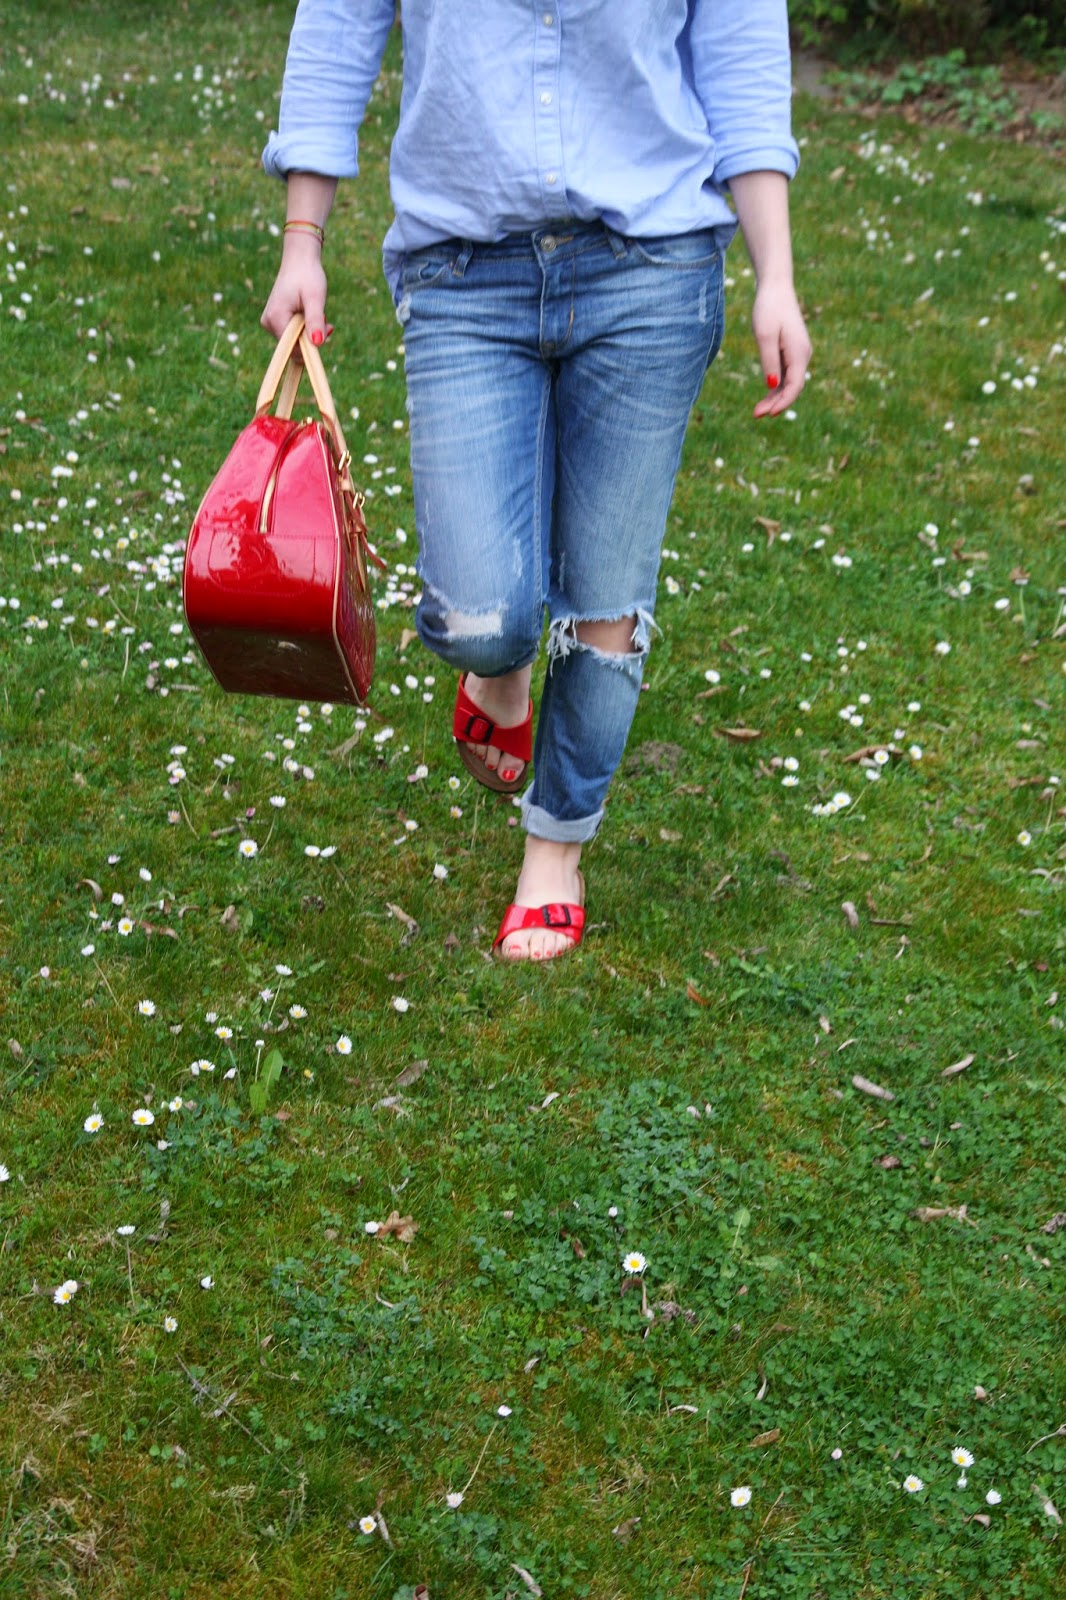 Birkenstock, Gebrüder Götz, Madrid Pantolette, Mode Blog, Fashion Blog, Modeblog, Fashionblog